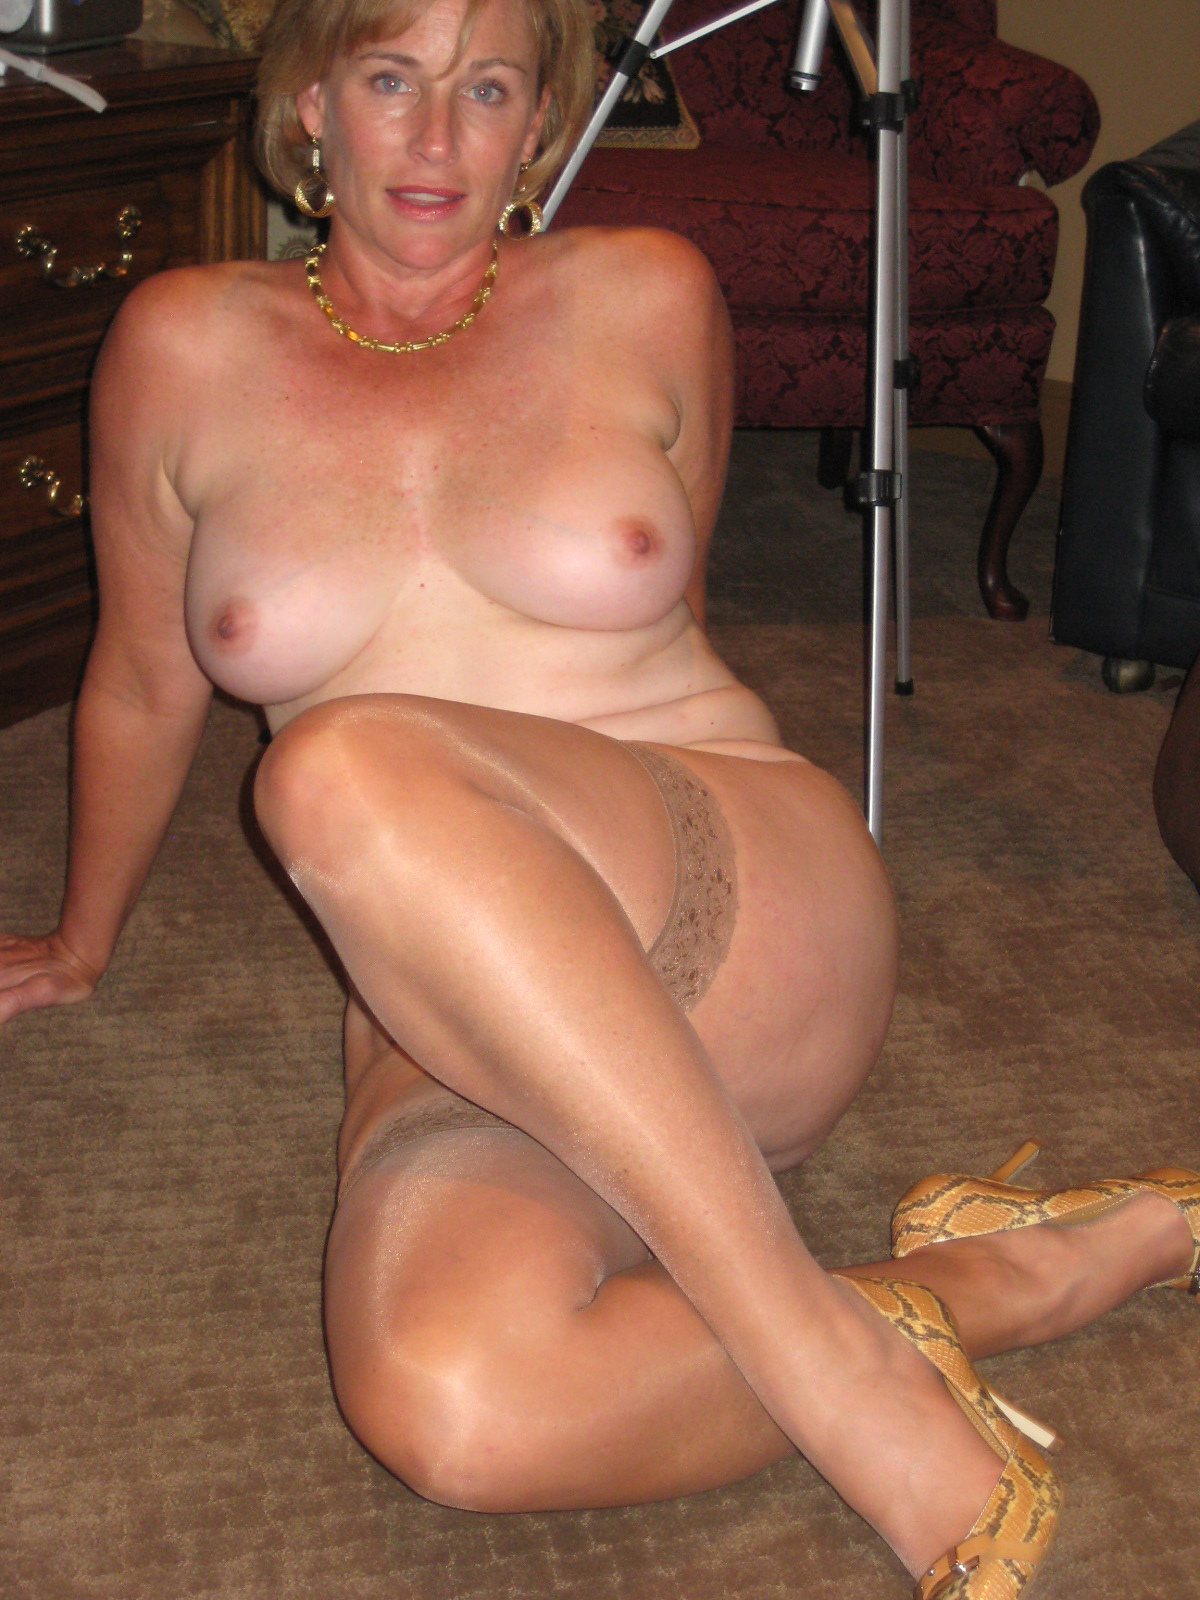 Nice nude milf in stockings